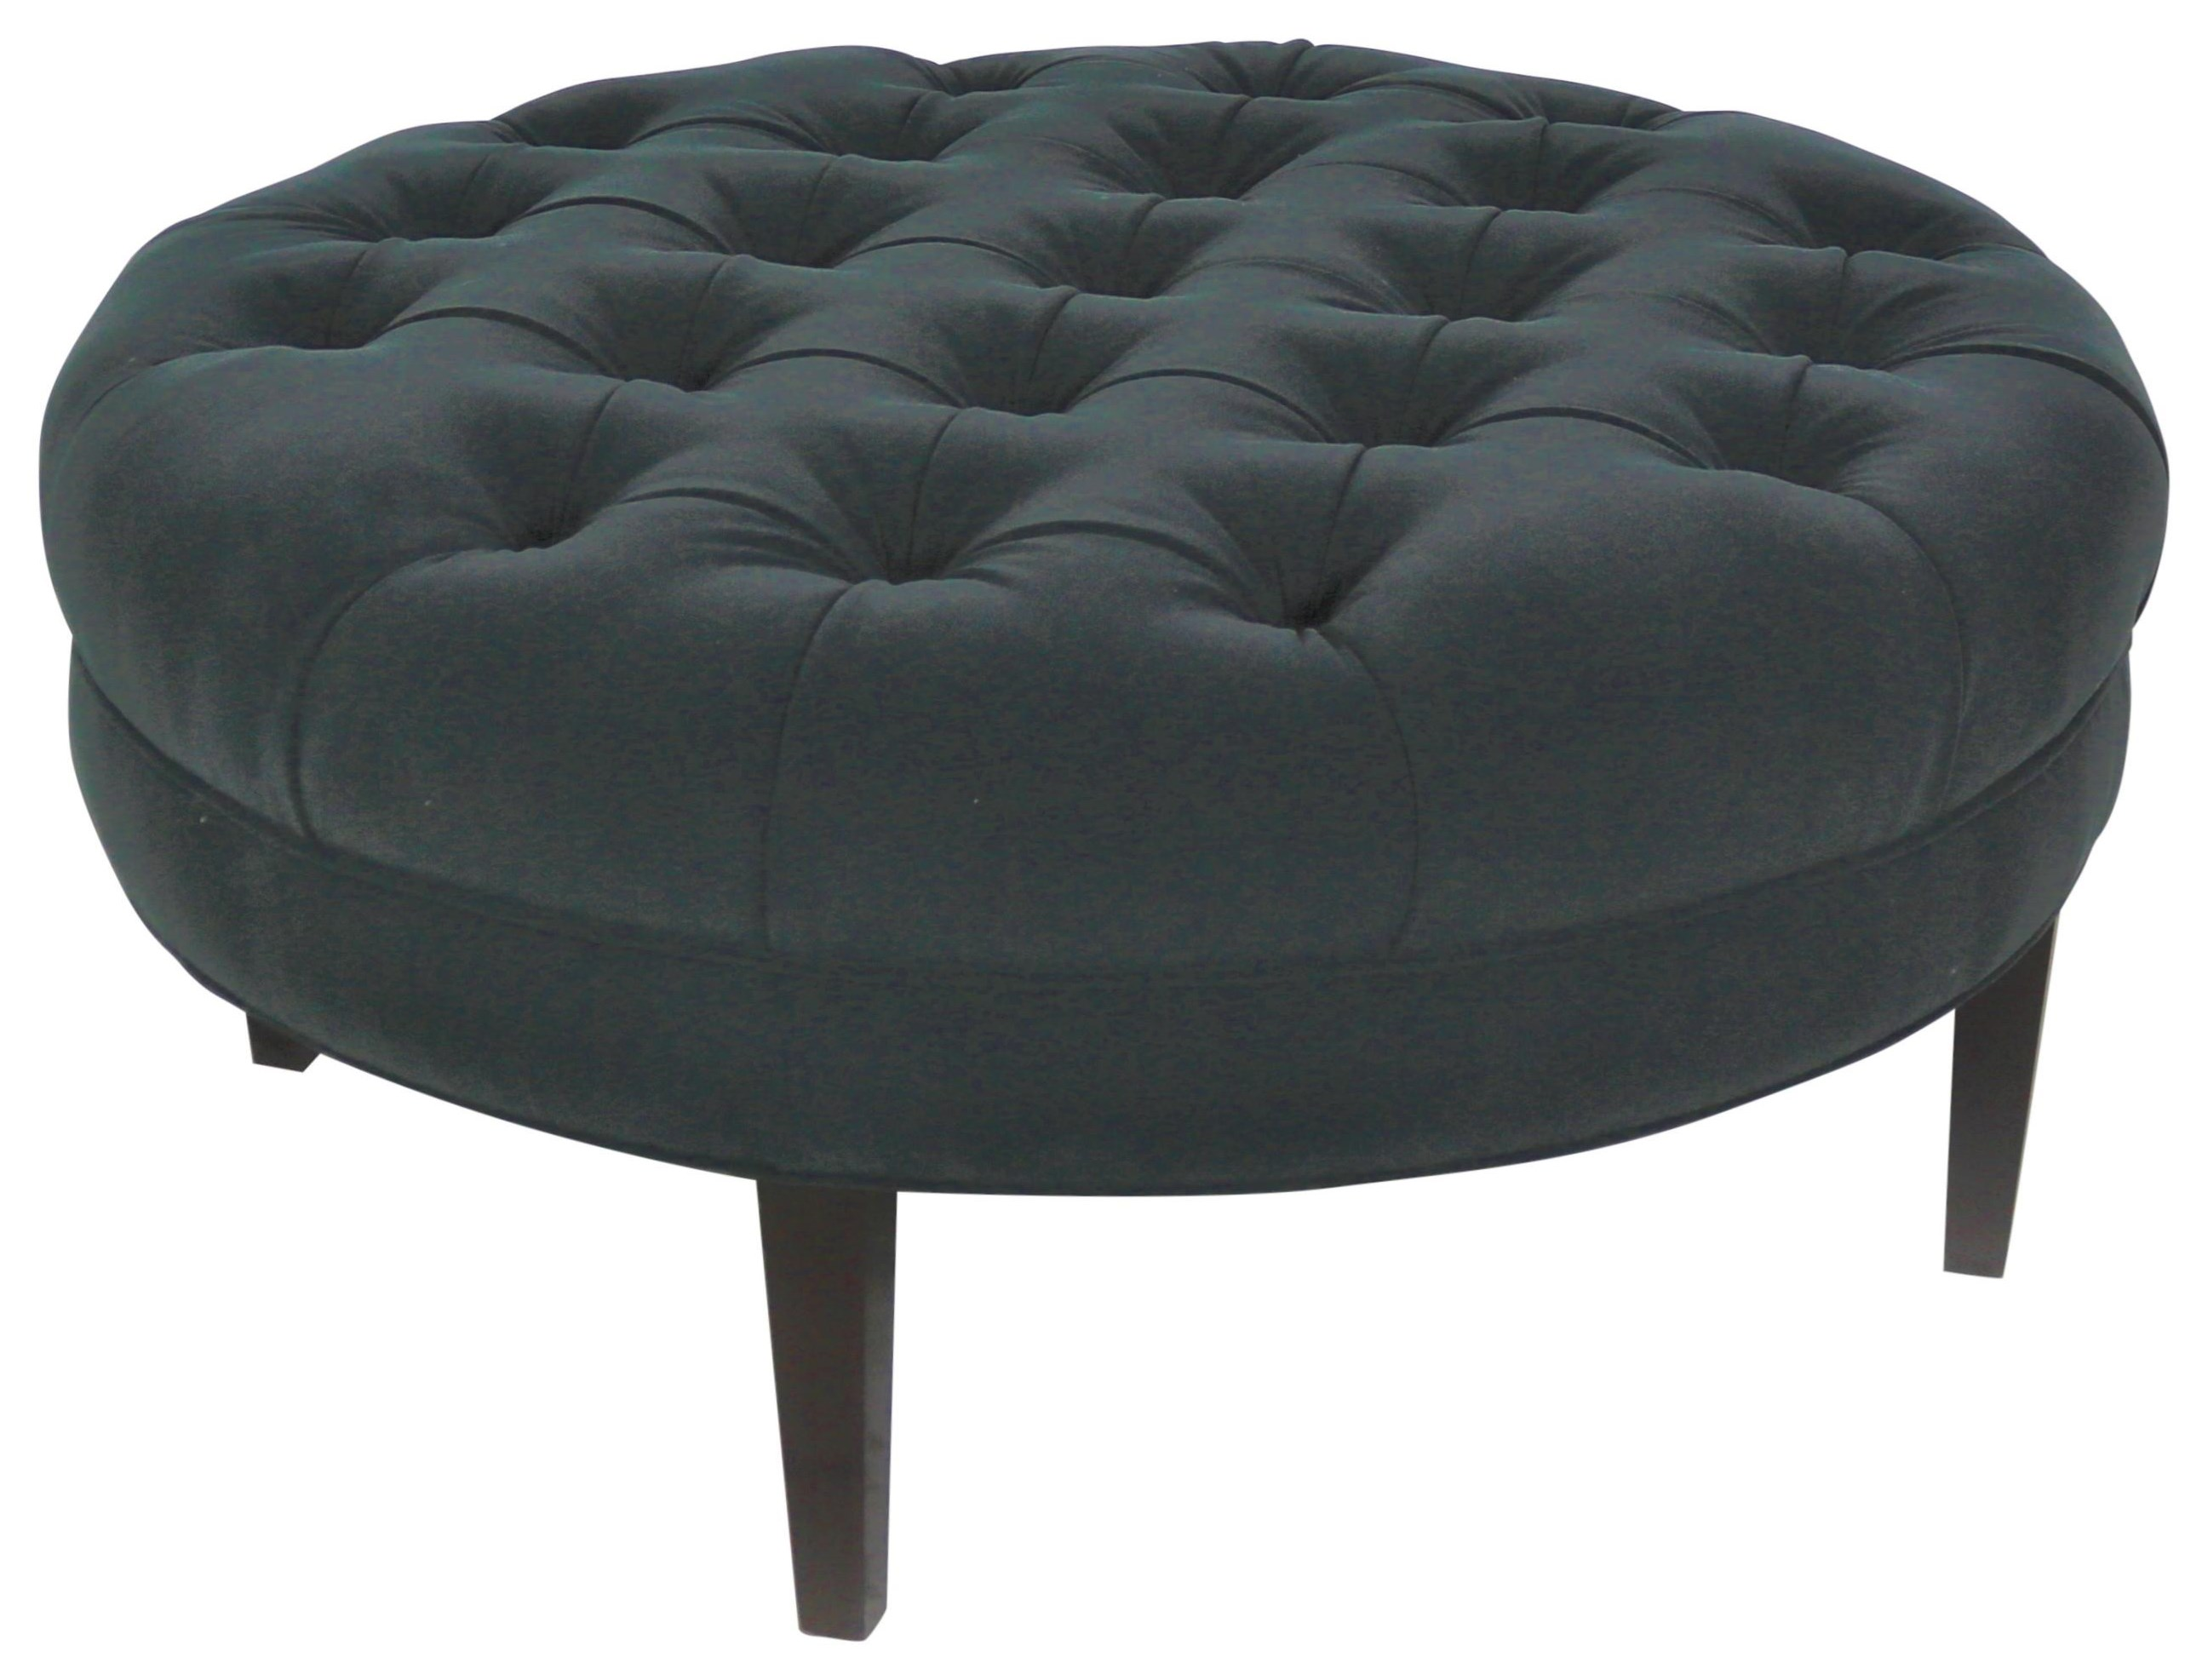 Fine Upholstered Accents Ottoman by Jessica Charles at Sprintz Furniture